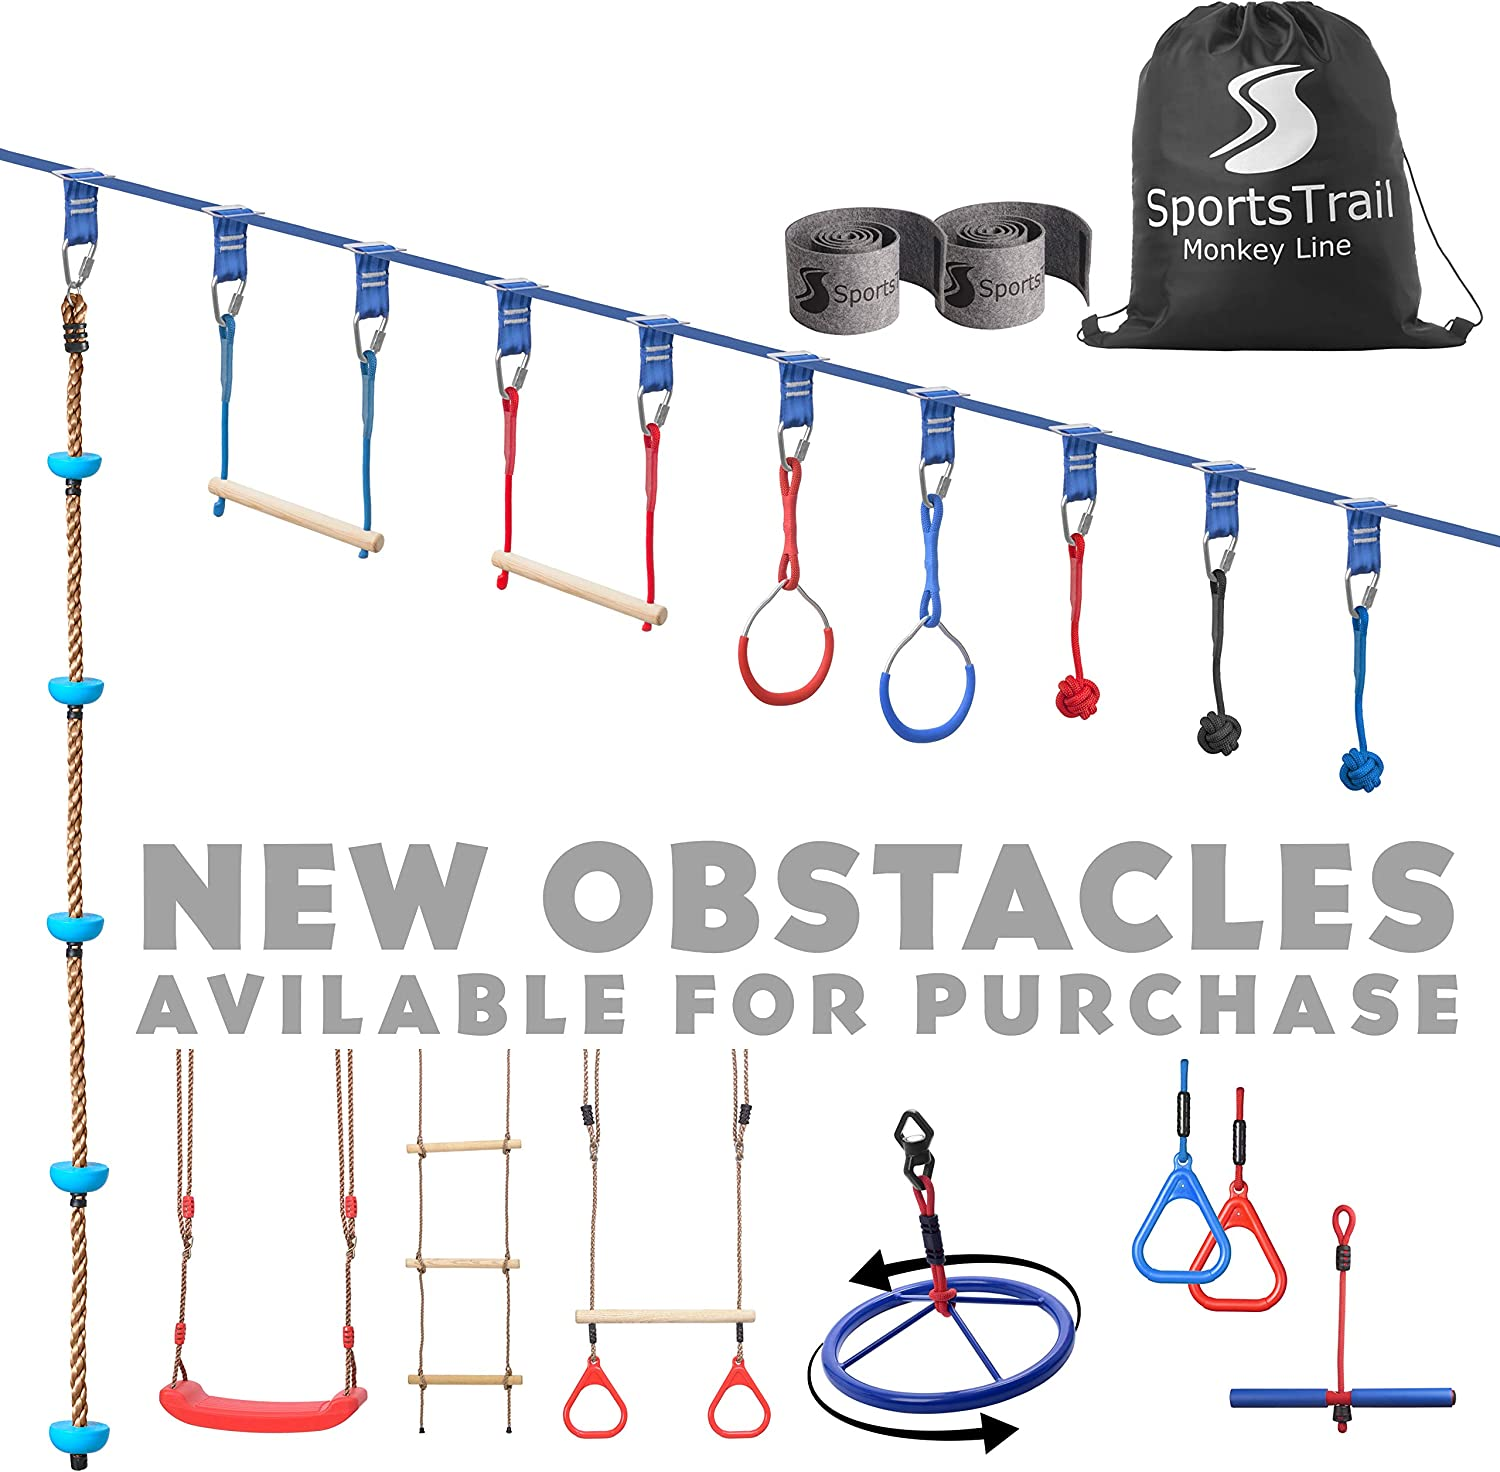 Ninja Slackline Monkey Bars Kit, 42' Jungle Gym Obstacle Course for Kids and Adults + Climbing Rope, Warrior Training Obstacle Course Equipment, Slackline Gymnastic Bar, Tree Protector & Carry Bag : Sports & Outdoors